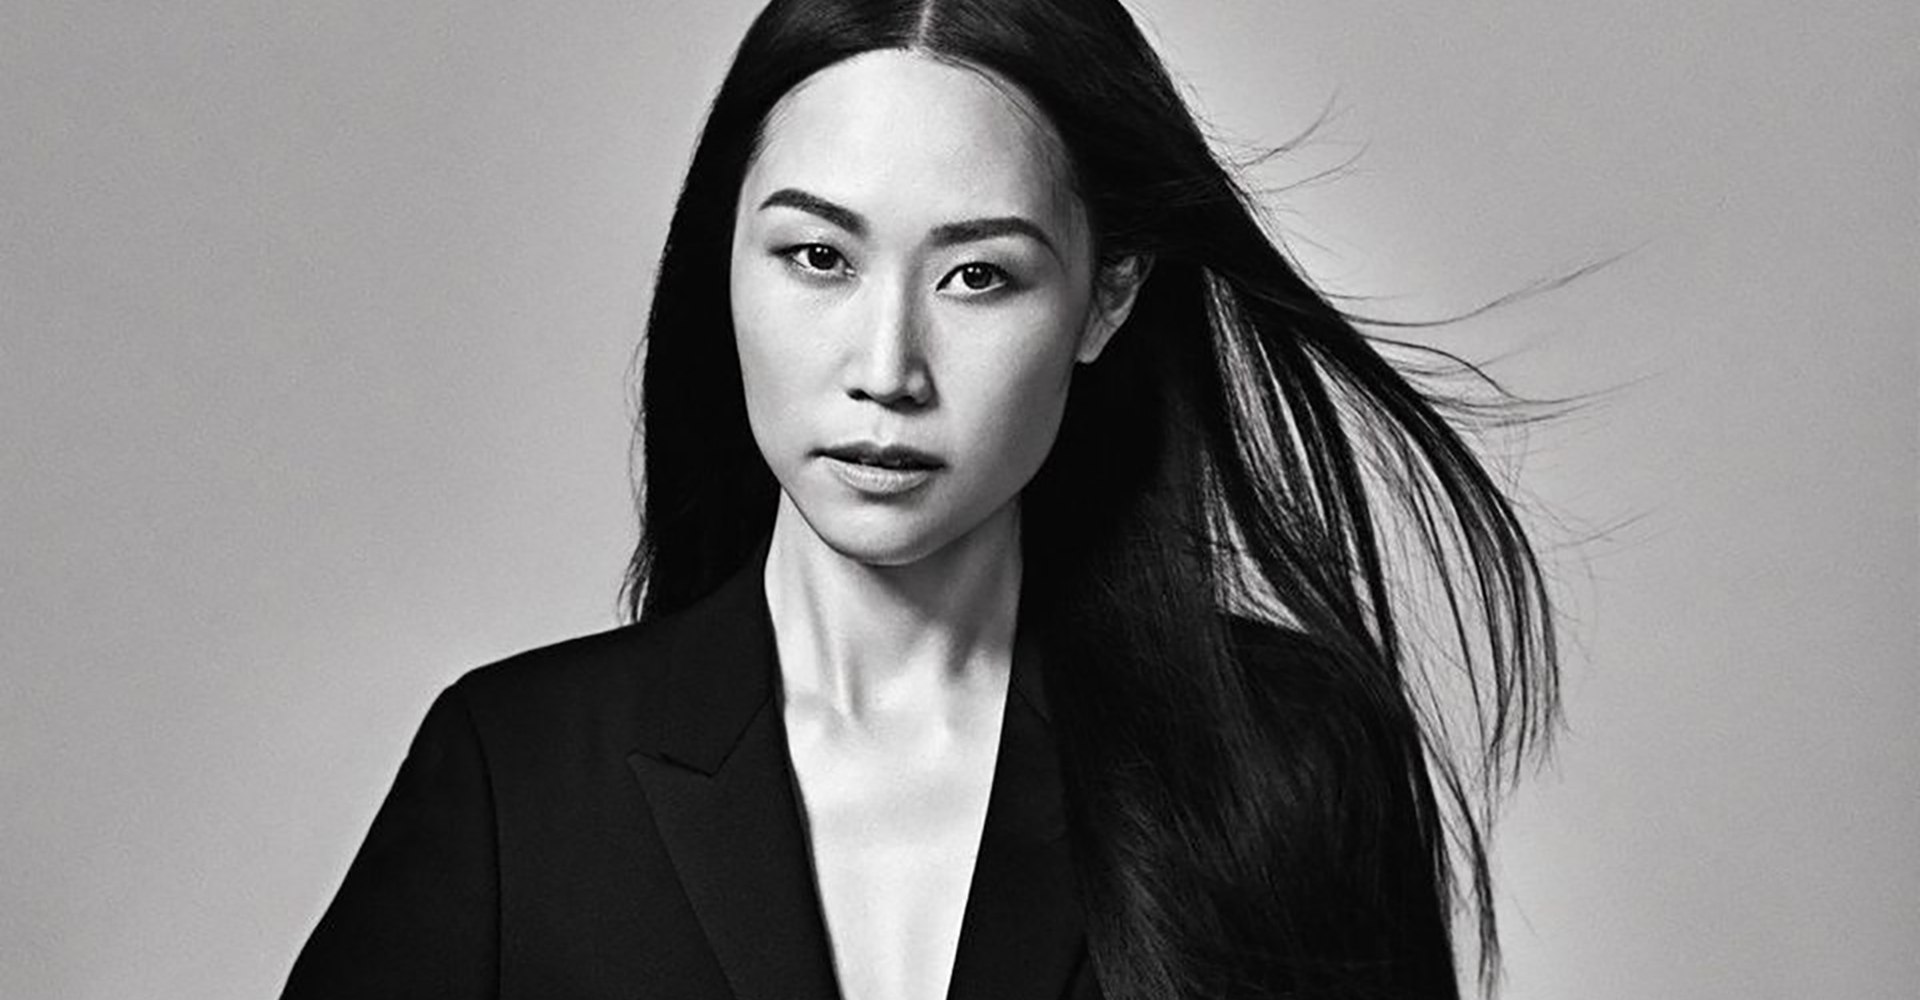 Pum Lefebure, ADWEEK's top 100 creative thinkers